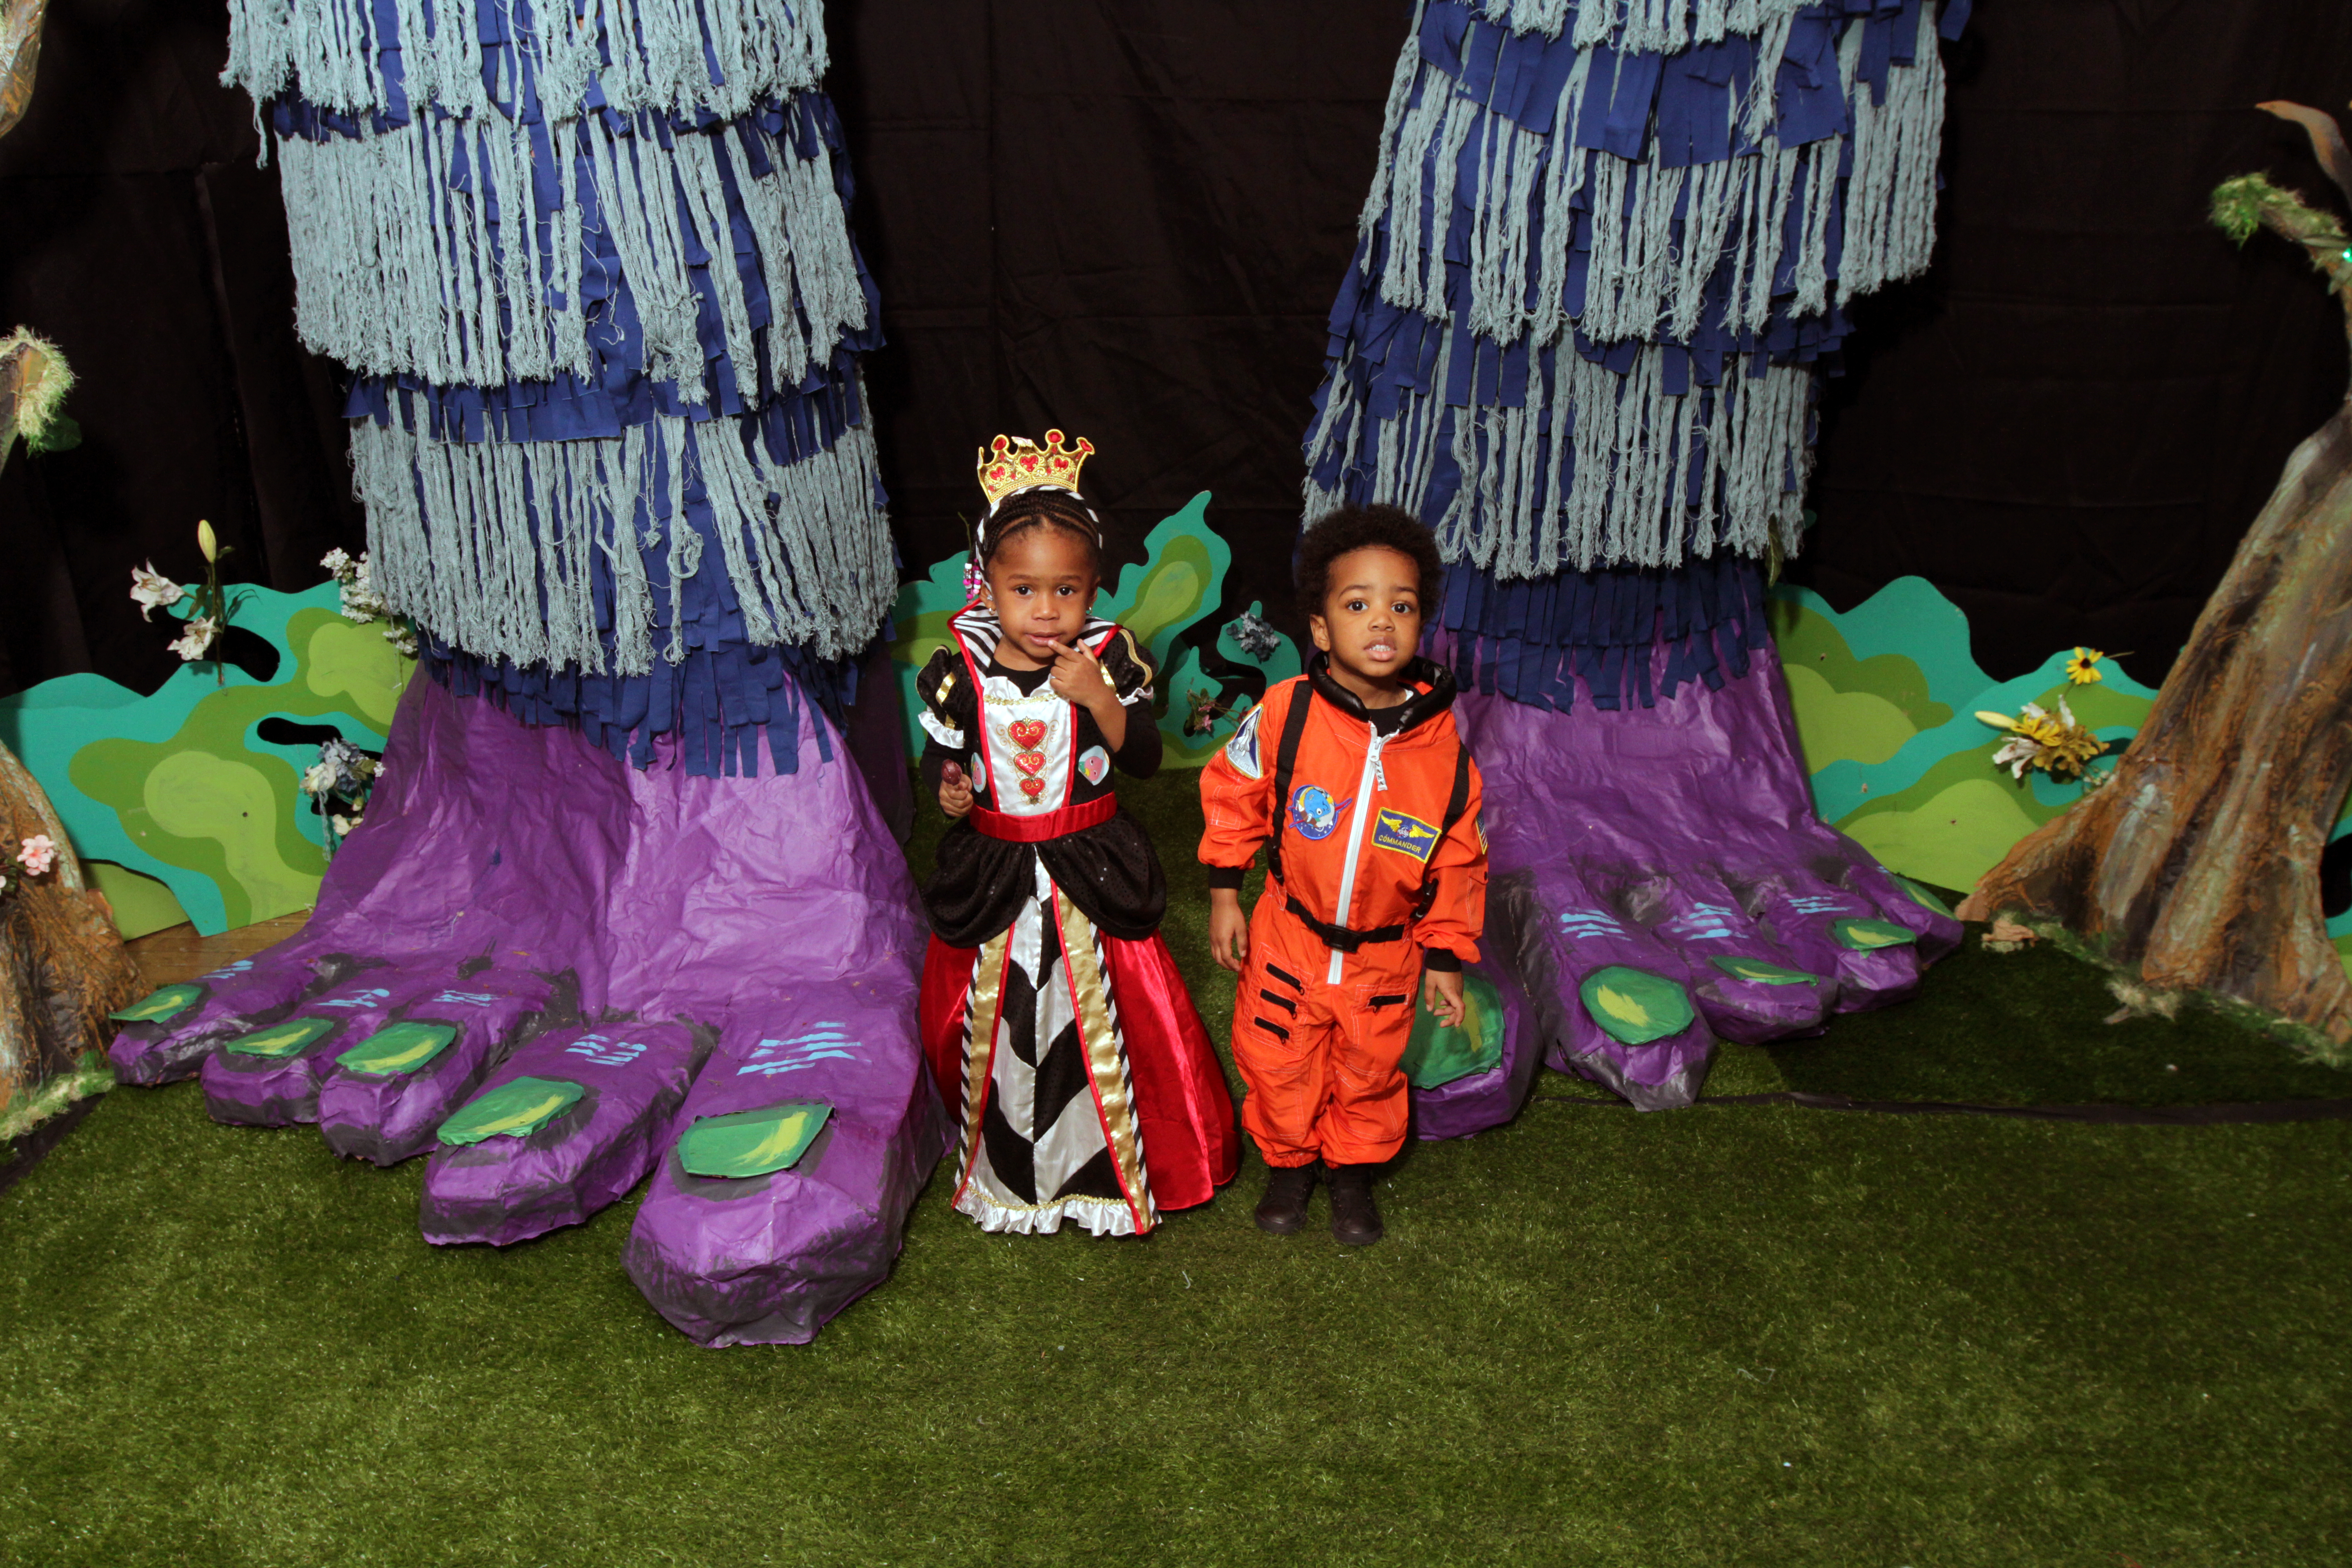 Spooktacular: Out of this World's Fair! at Queens Museum